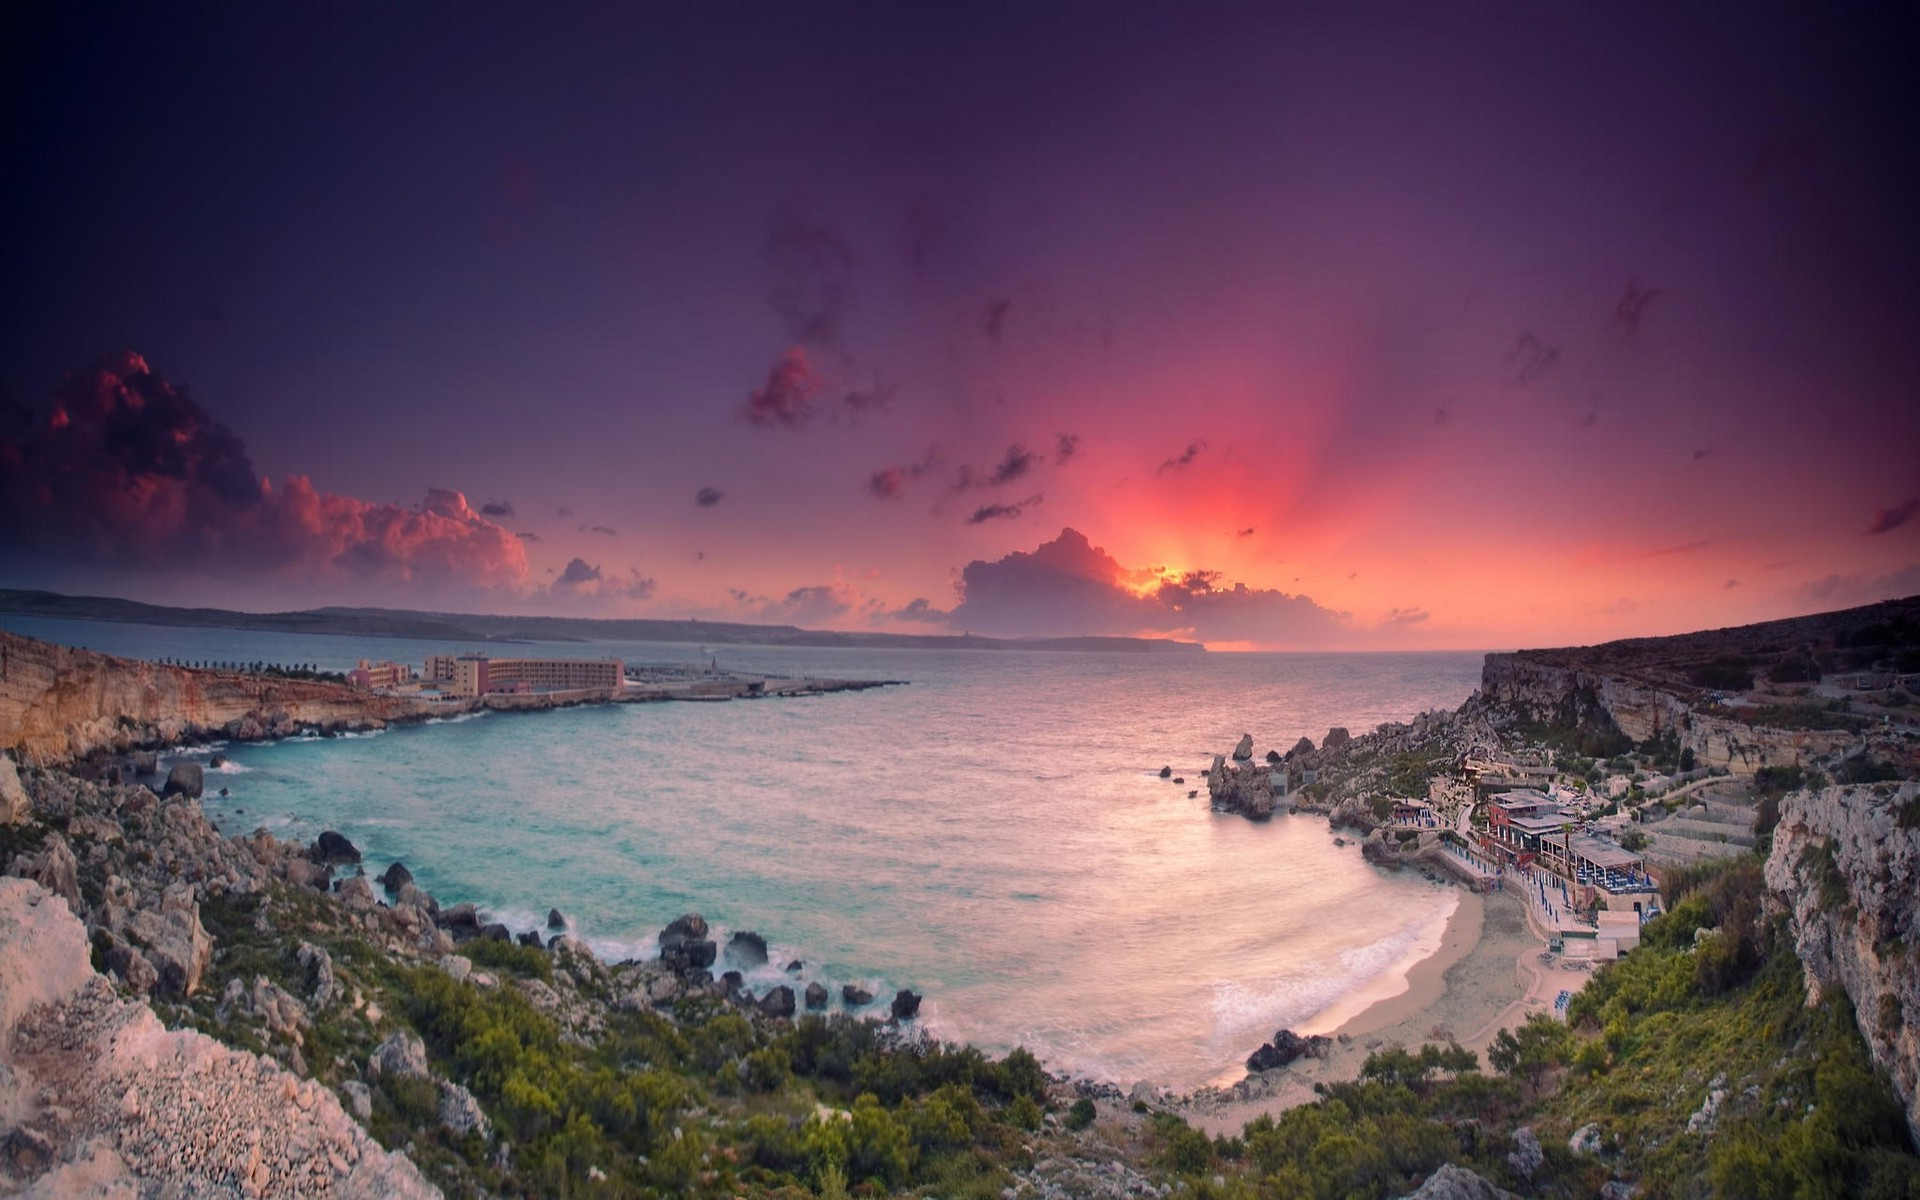 Http Fullhdpictures Com Best Of Malta Hq Wallpapers Html Malta Photos Hd